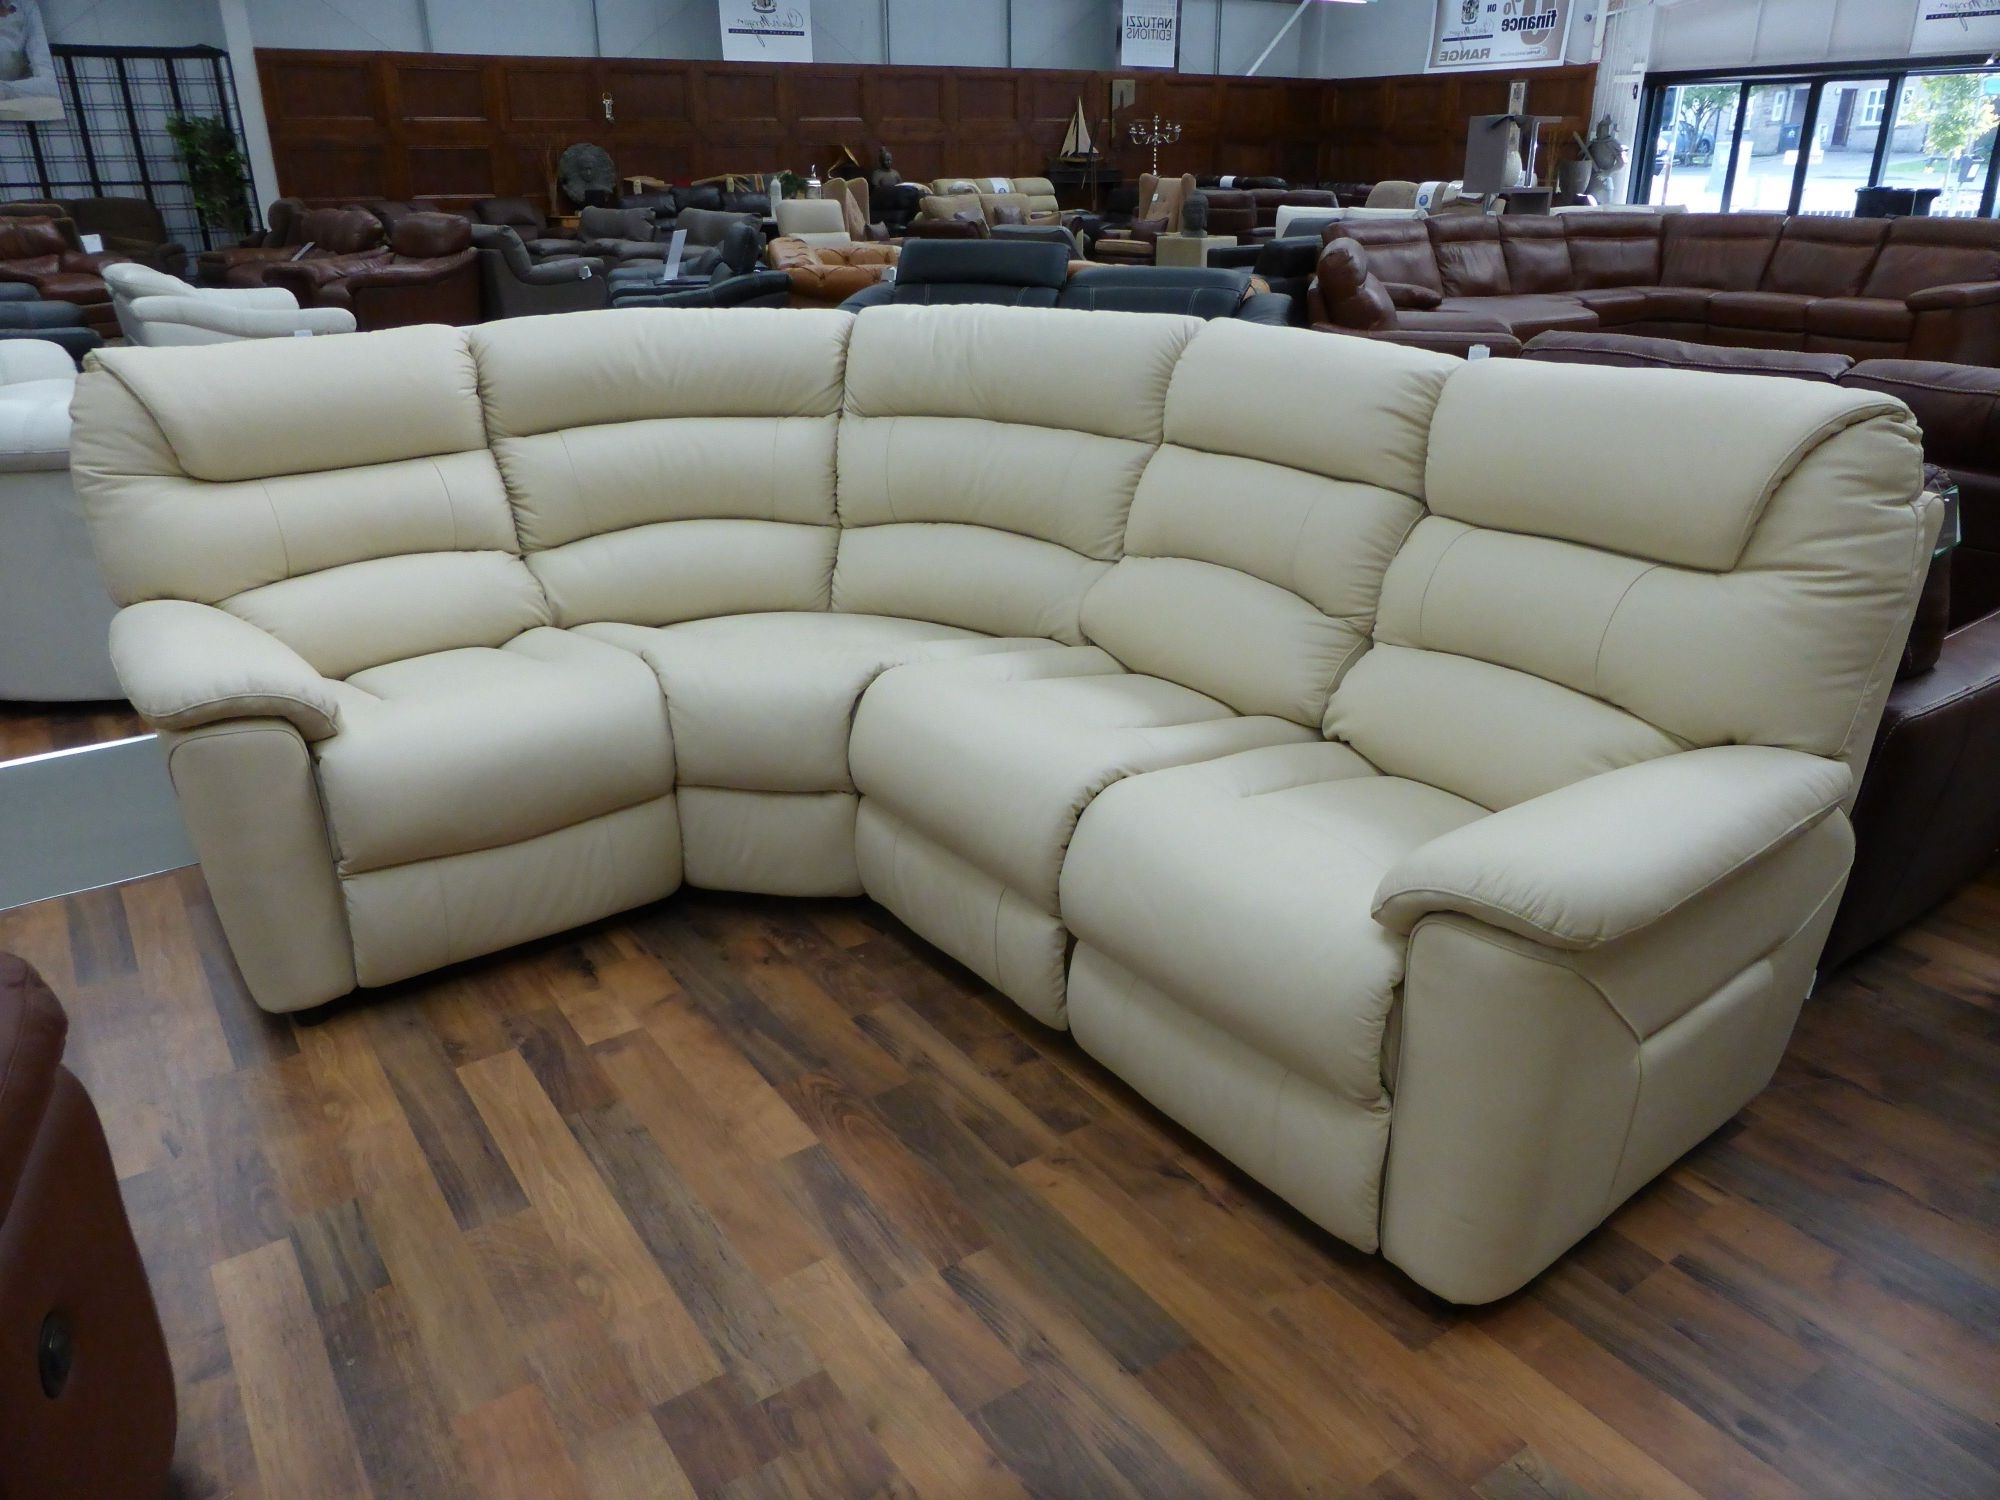 Incredible Laboy Sofa Frame Construction Leather Reclining Within Preferred Sectional Sofas At Lazy Boy (View 13 of 15)